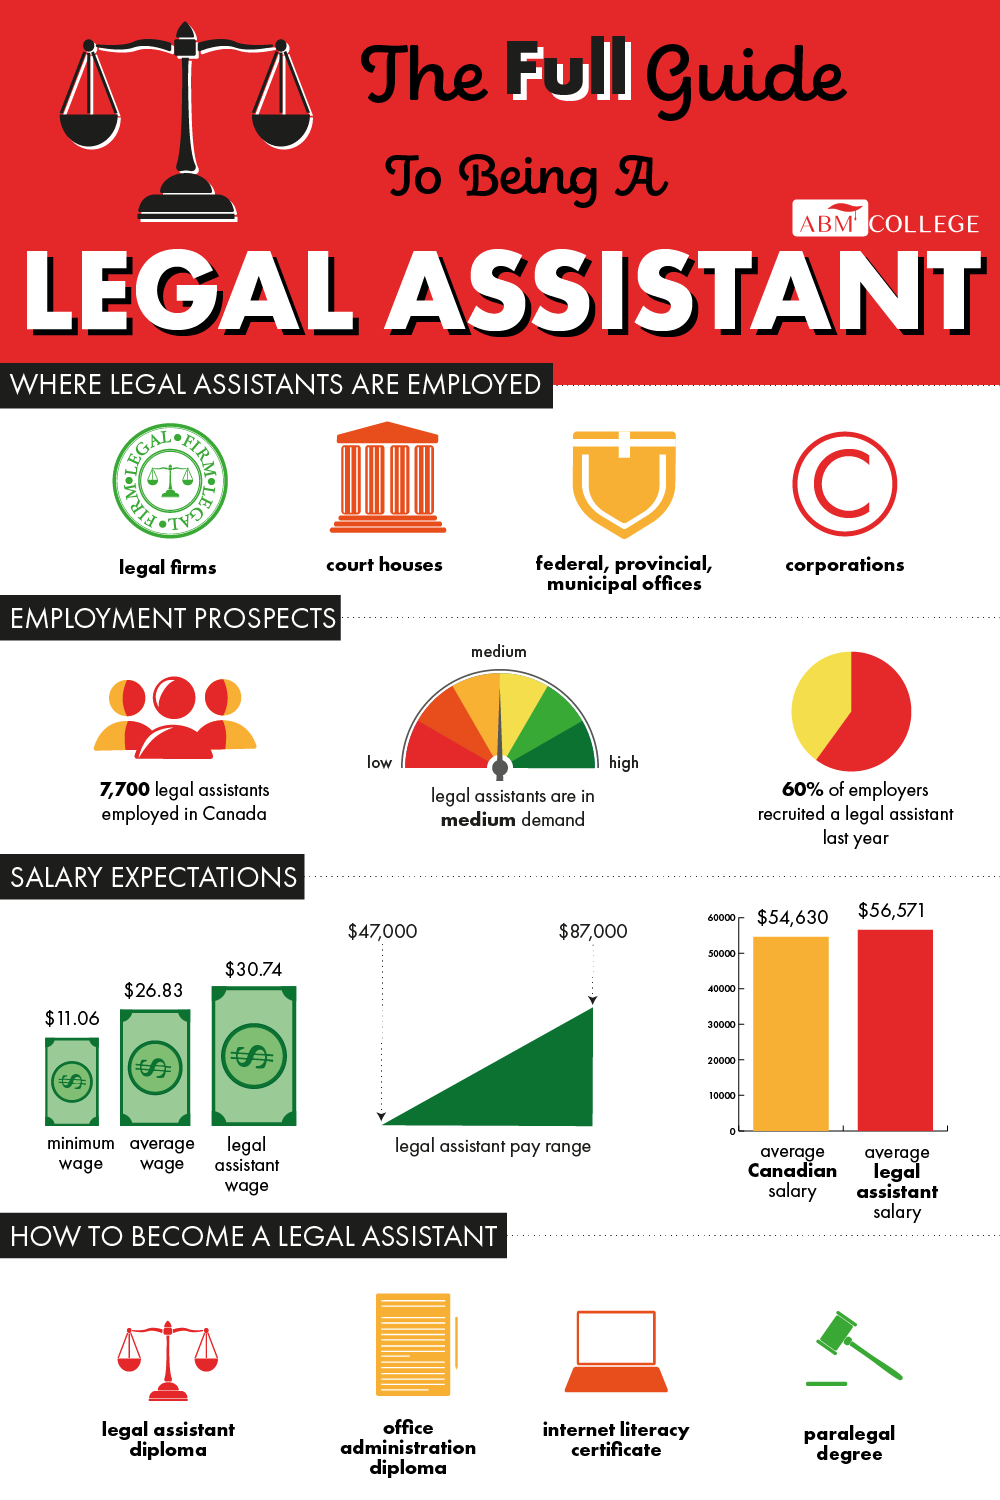 An infographic including statistics and information about legal assistants, their salaries, qualifications, and employment opportunities.